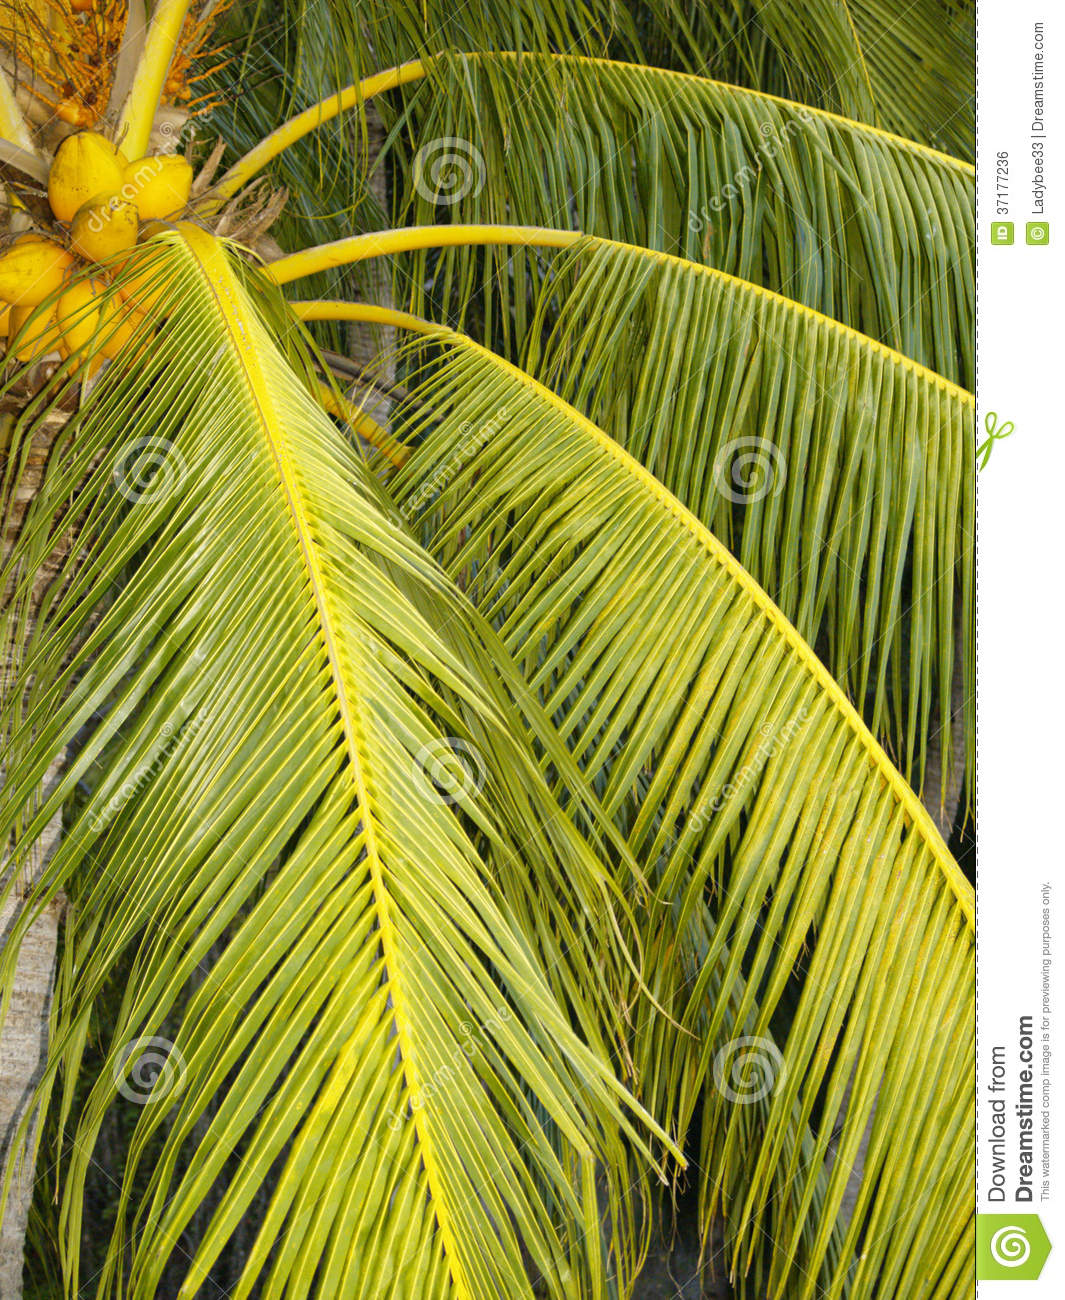 Coconut Palm Tree Branches Royalty Free Stock Image ...